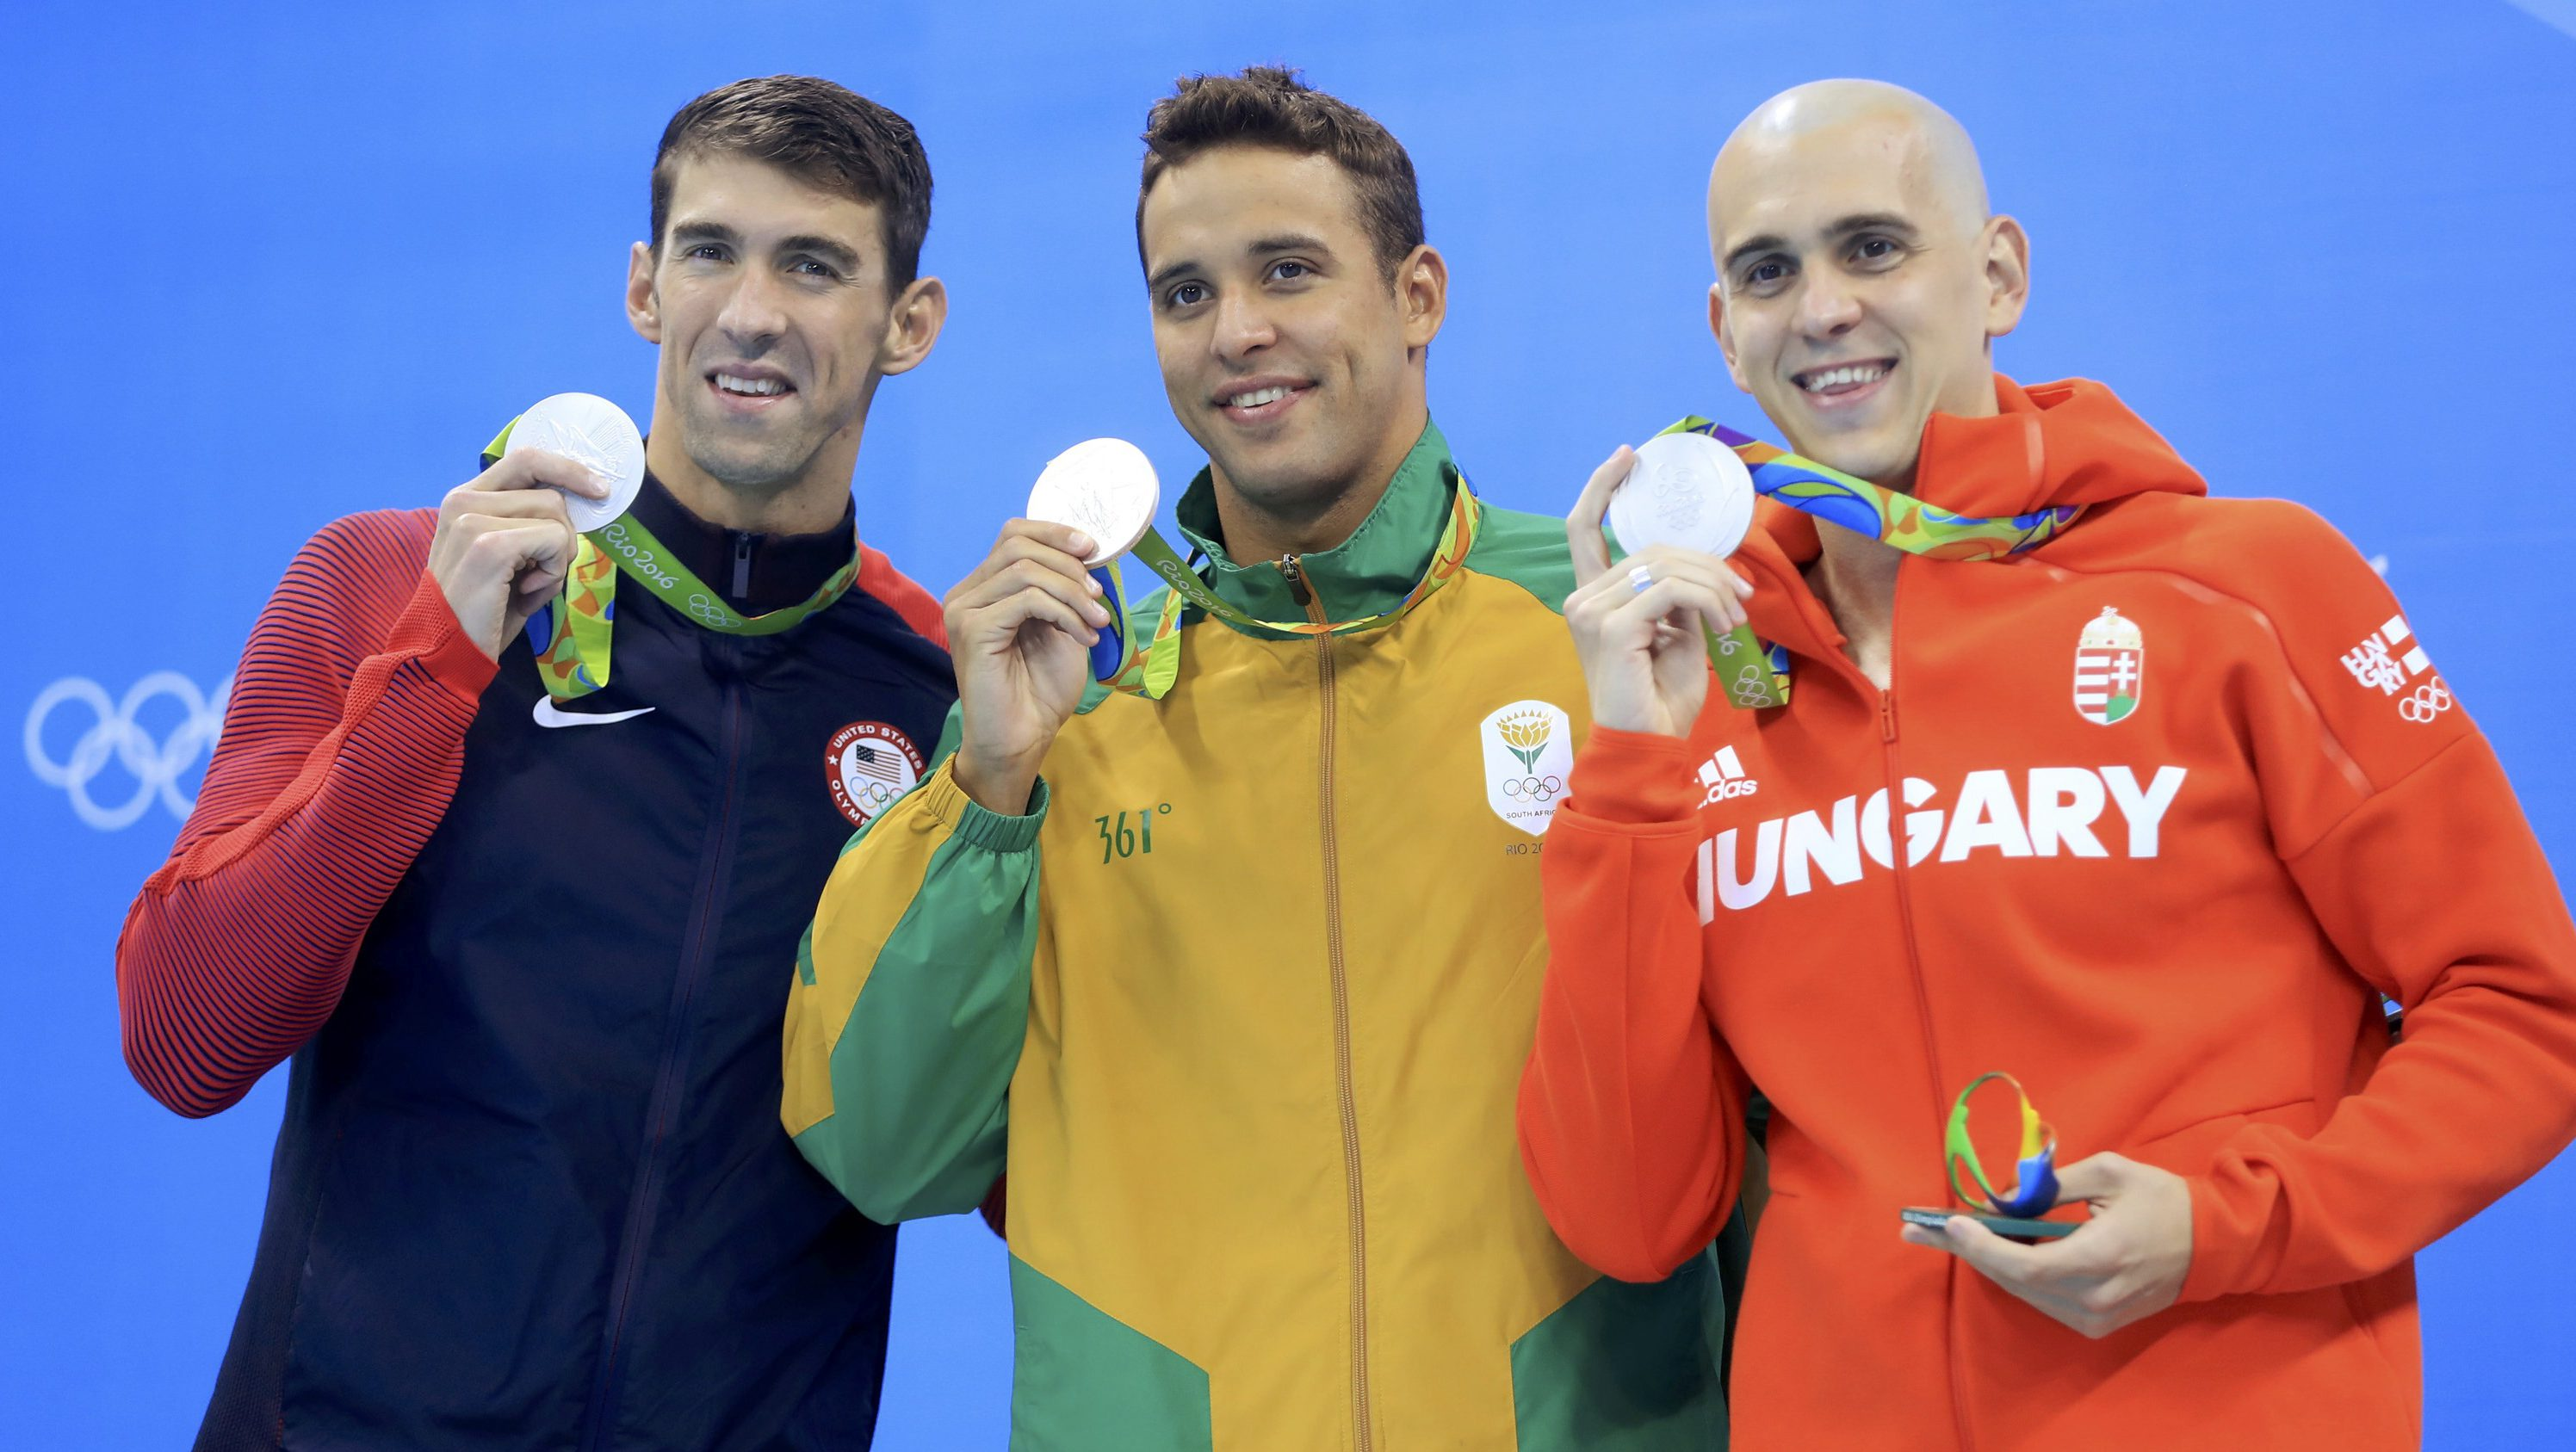 Swimmers Michael Phelps, Chad le Clos, and Laszlo Cseh hold up their silver medals in a three-way tie at the Olympics.